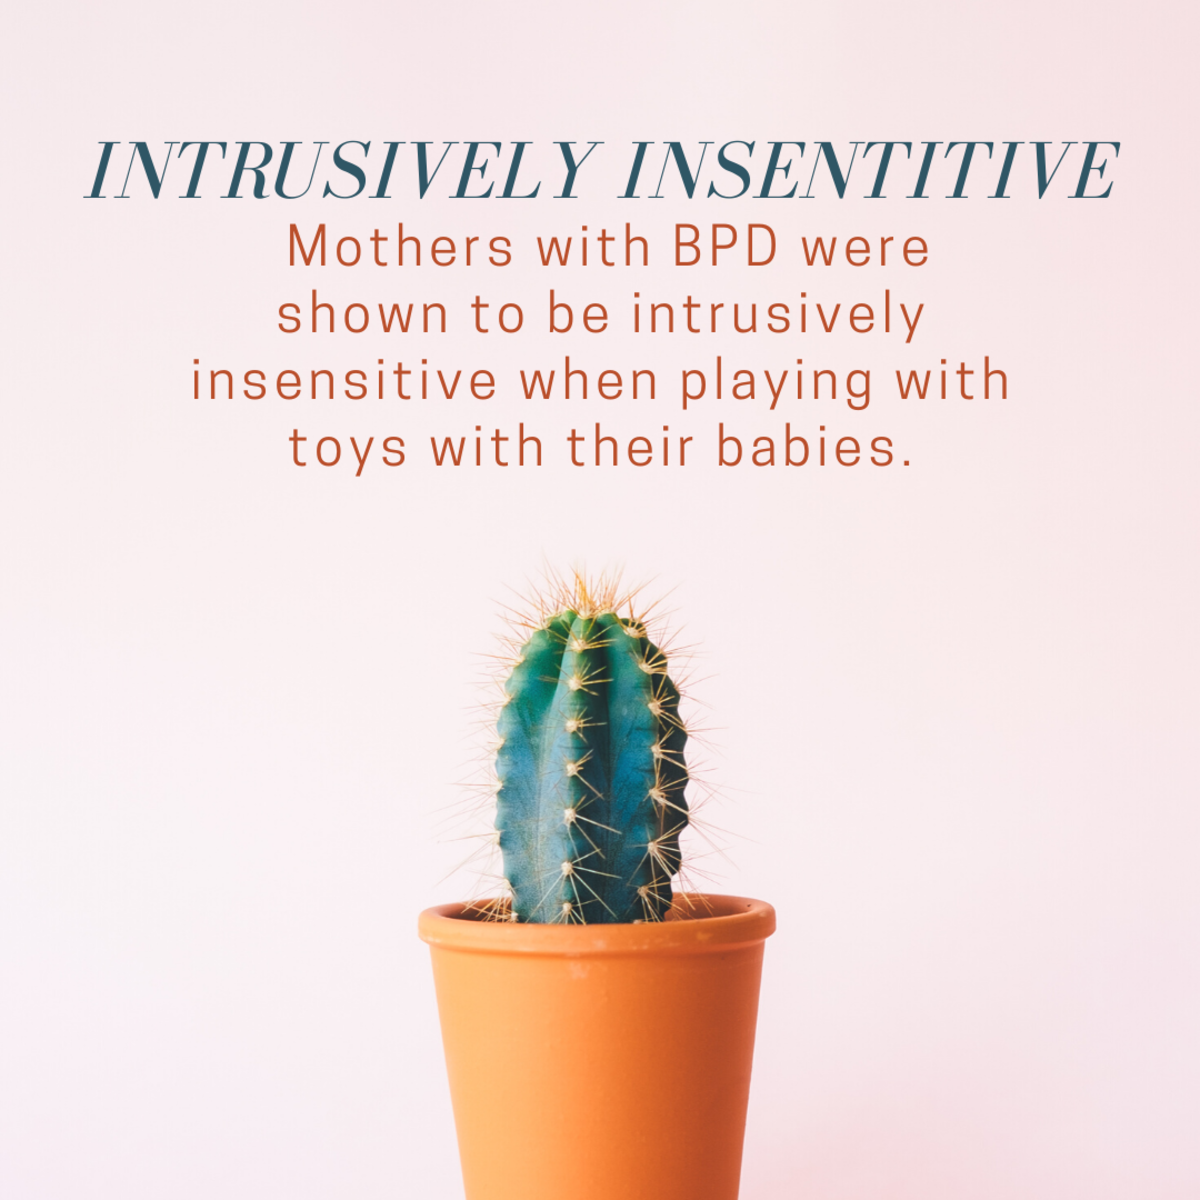 How Is Infant Development Impacted When the Mother Has BPD?